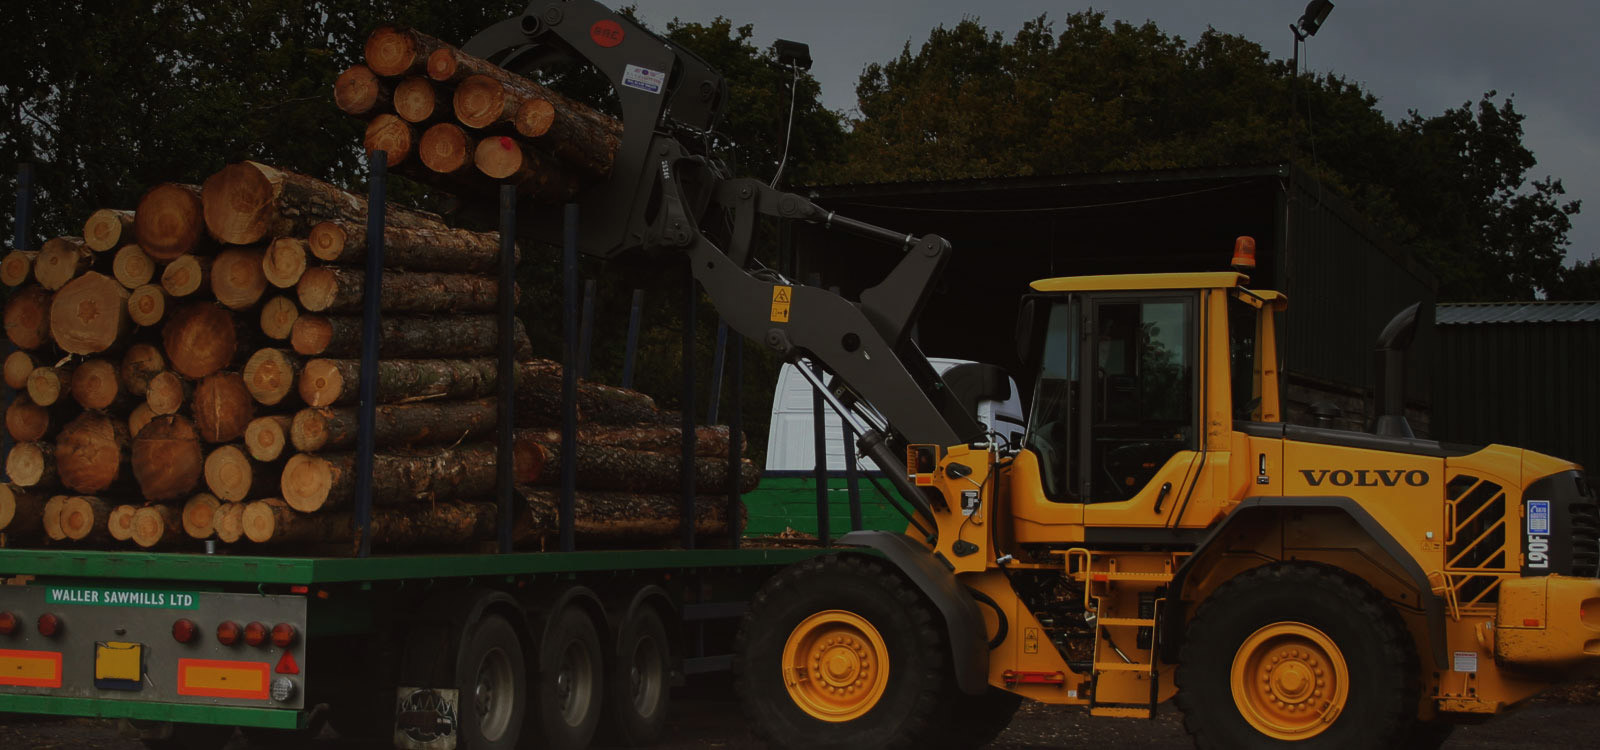 Waller Sawmills is a modern softwood sawmill producing pressure treated fencing products